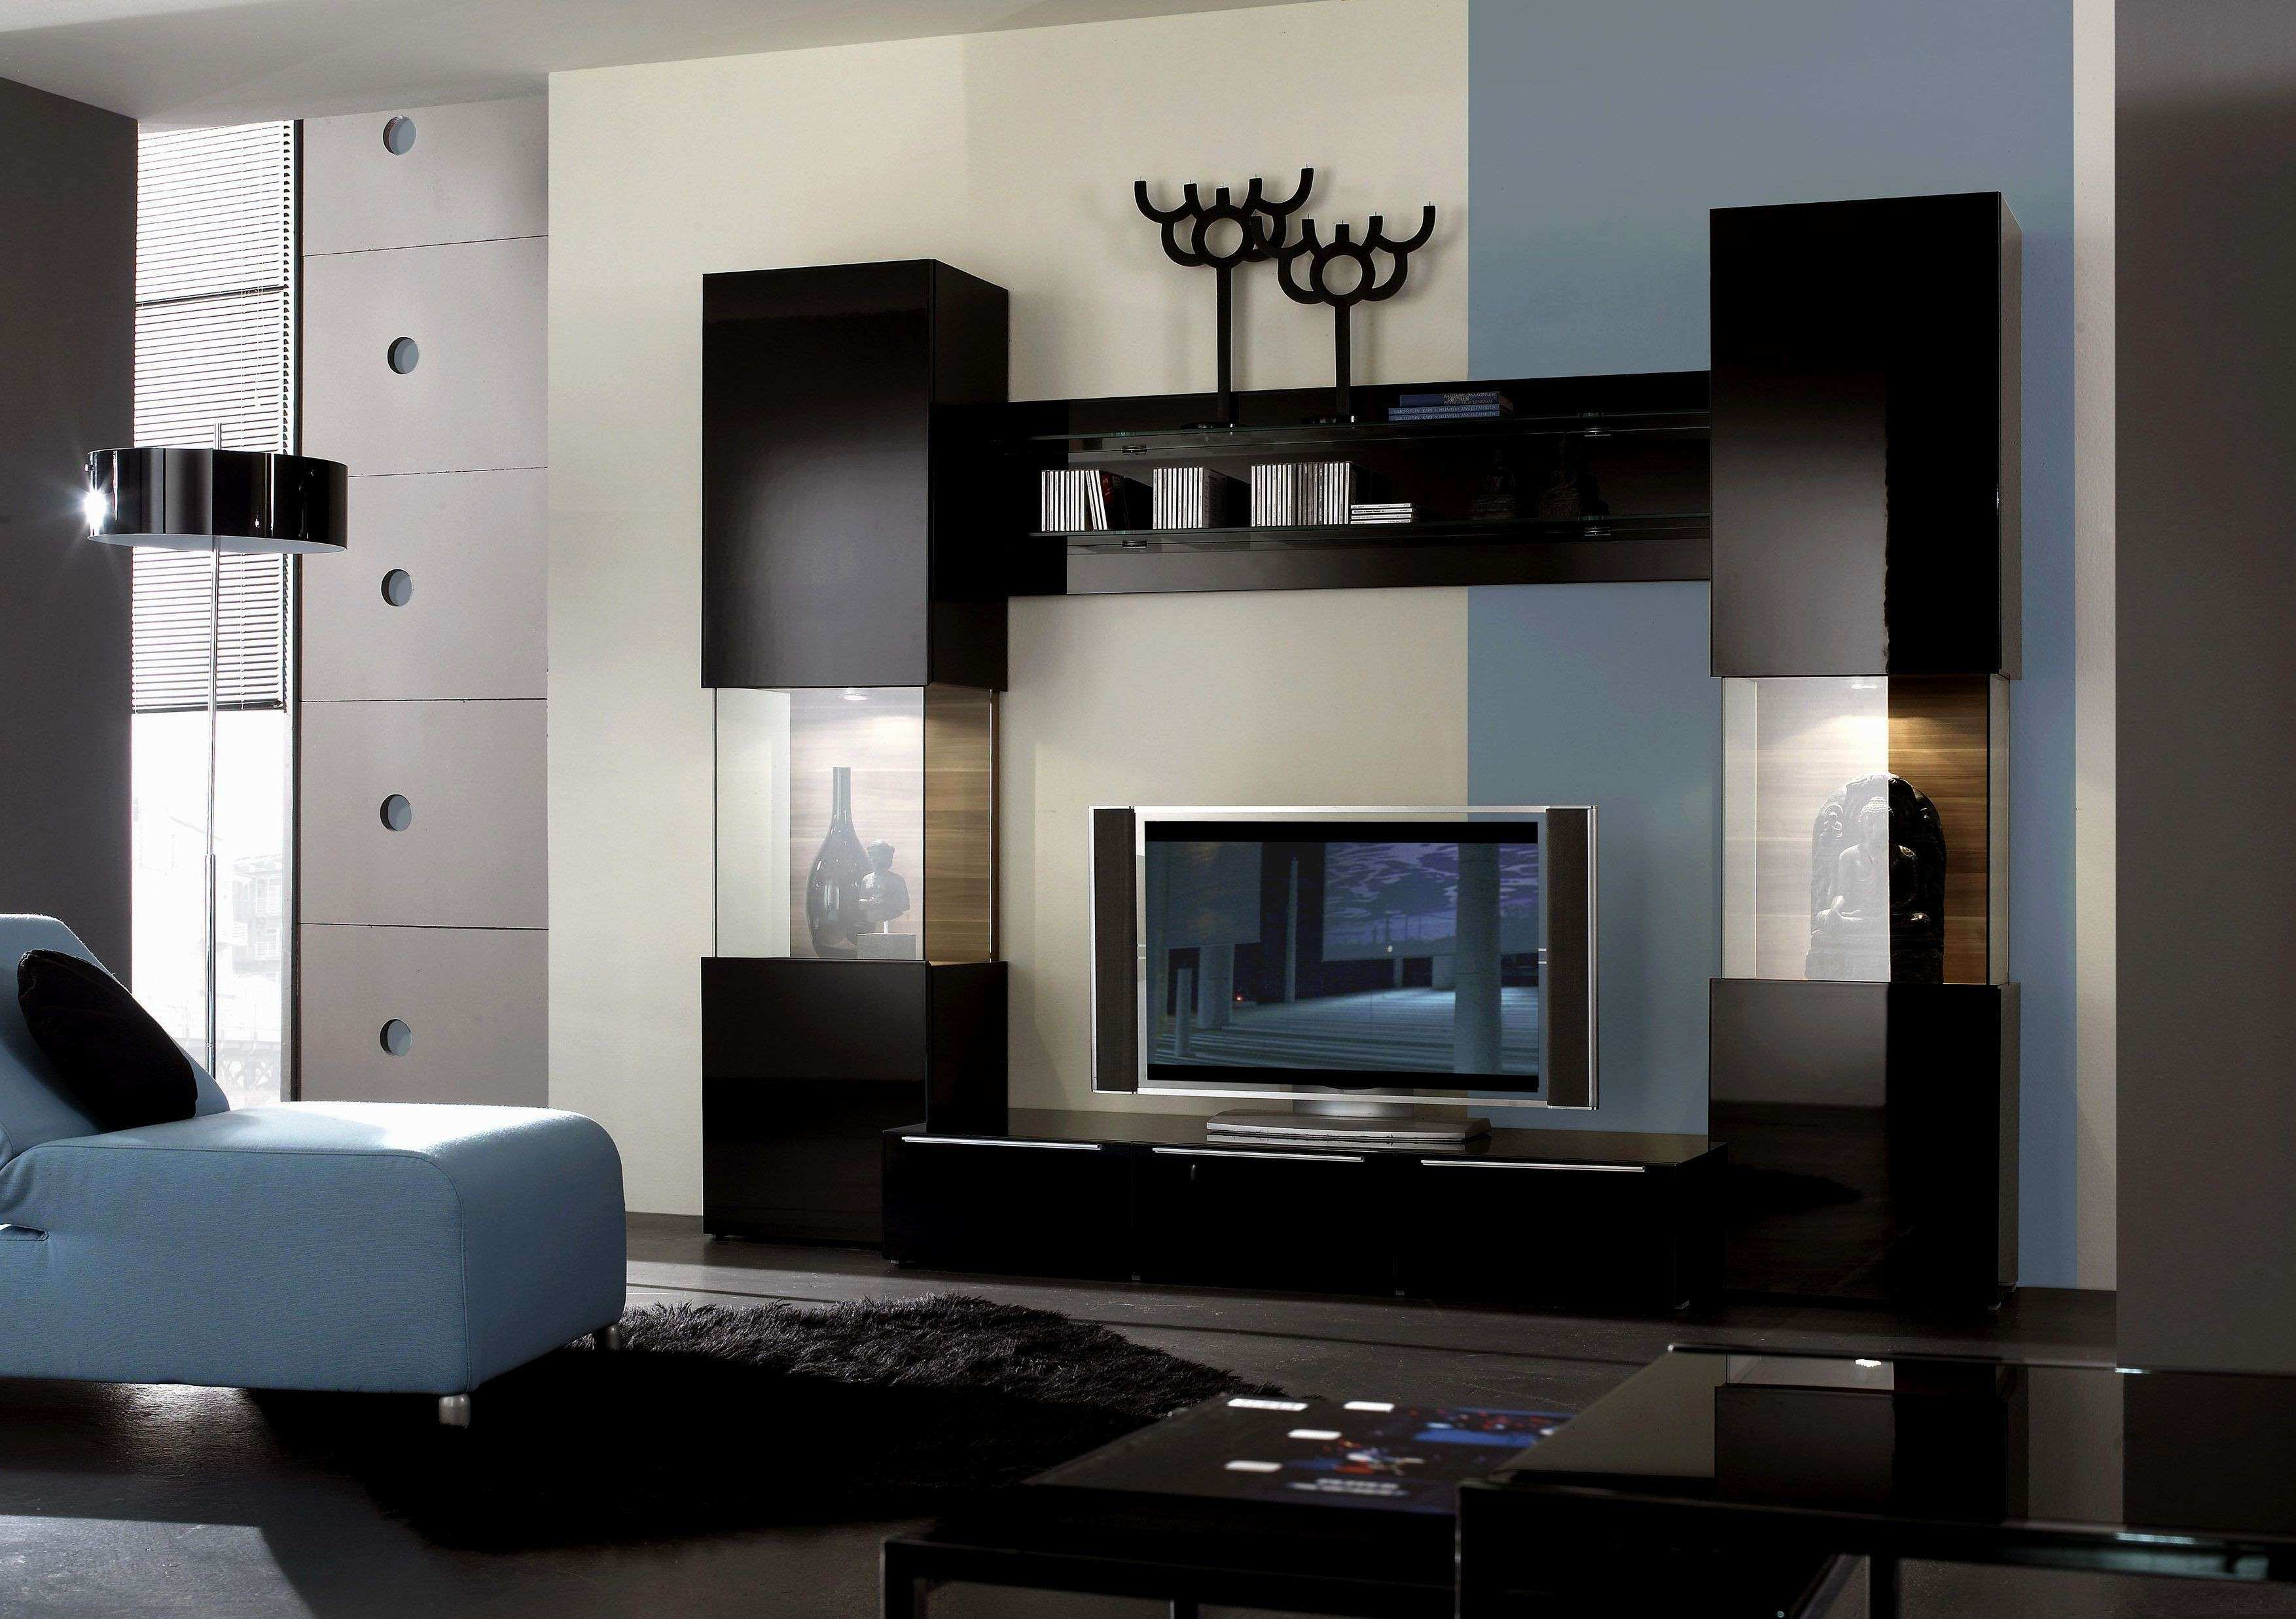 Free Download Image New Living Room Decorating Ideas Tv Wall ...